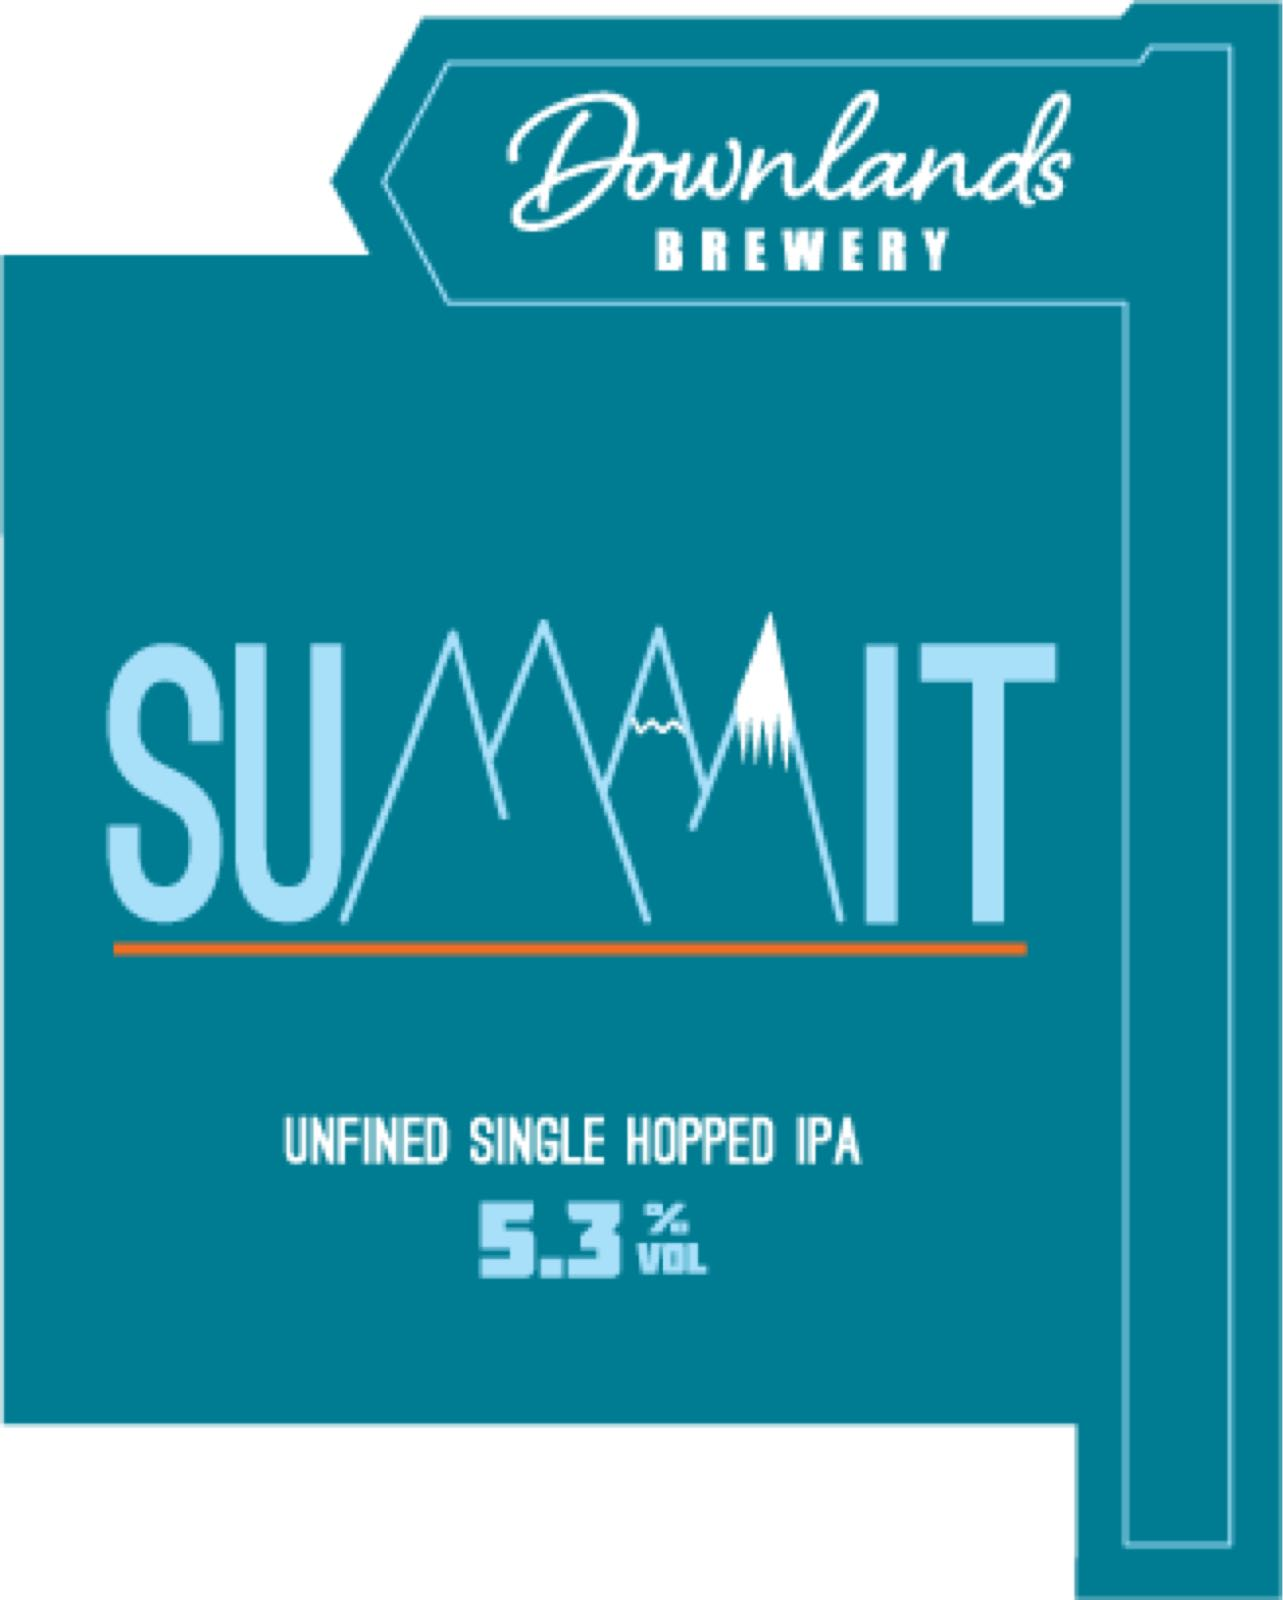 Downlands  Summit IPA